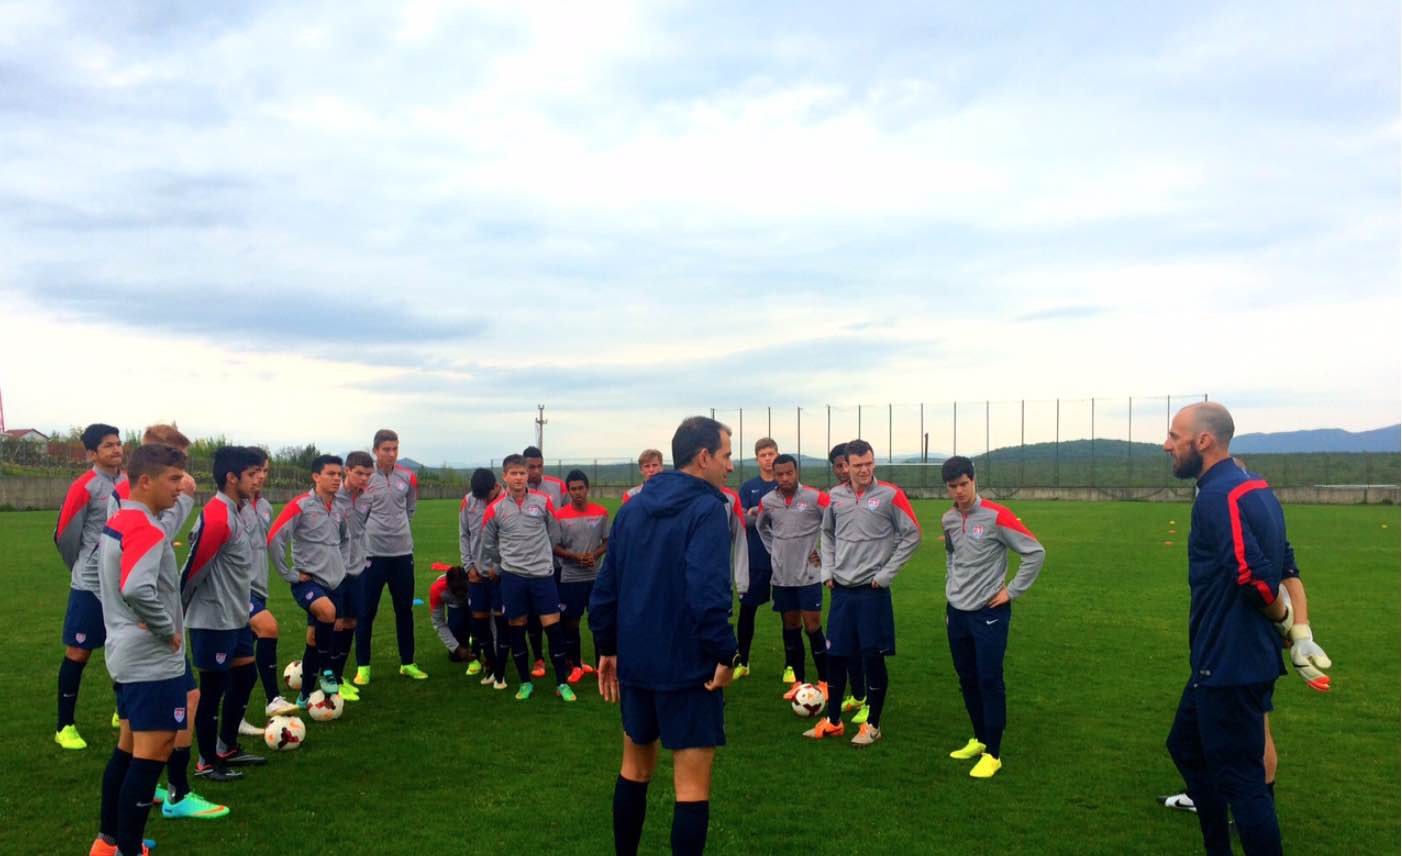 U.S. U-18 MNT in Carson, California for camp and NTC Invitational Tournament